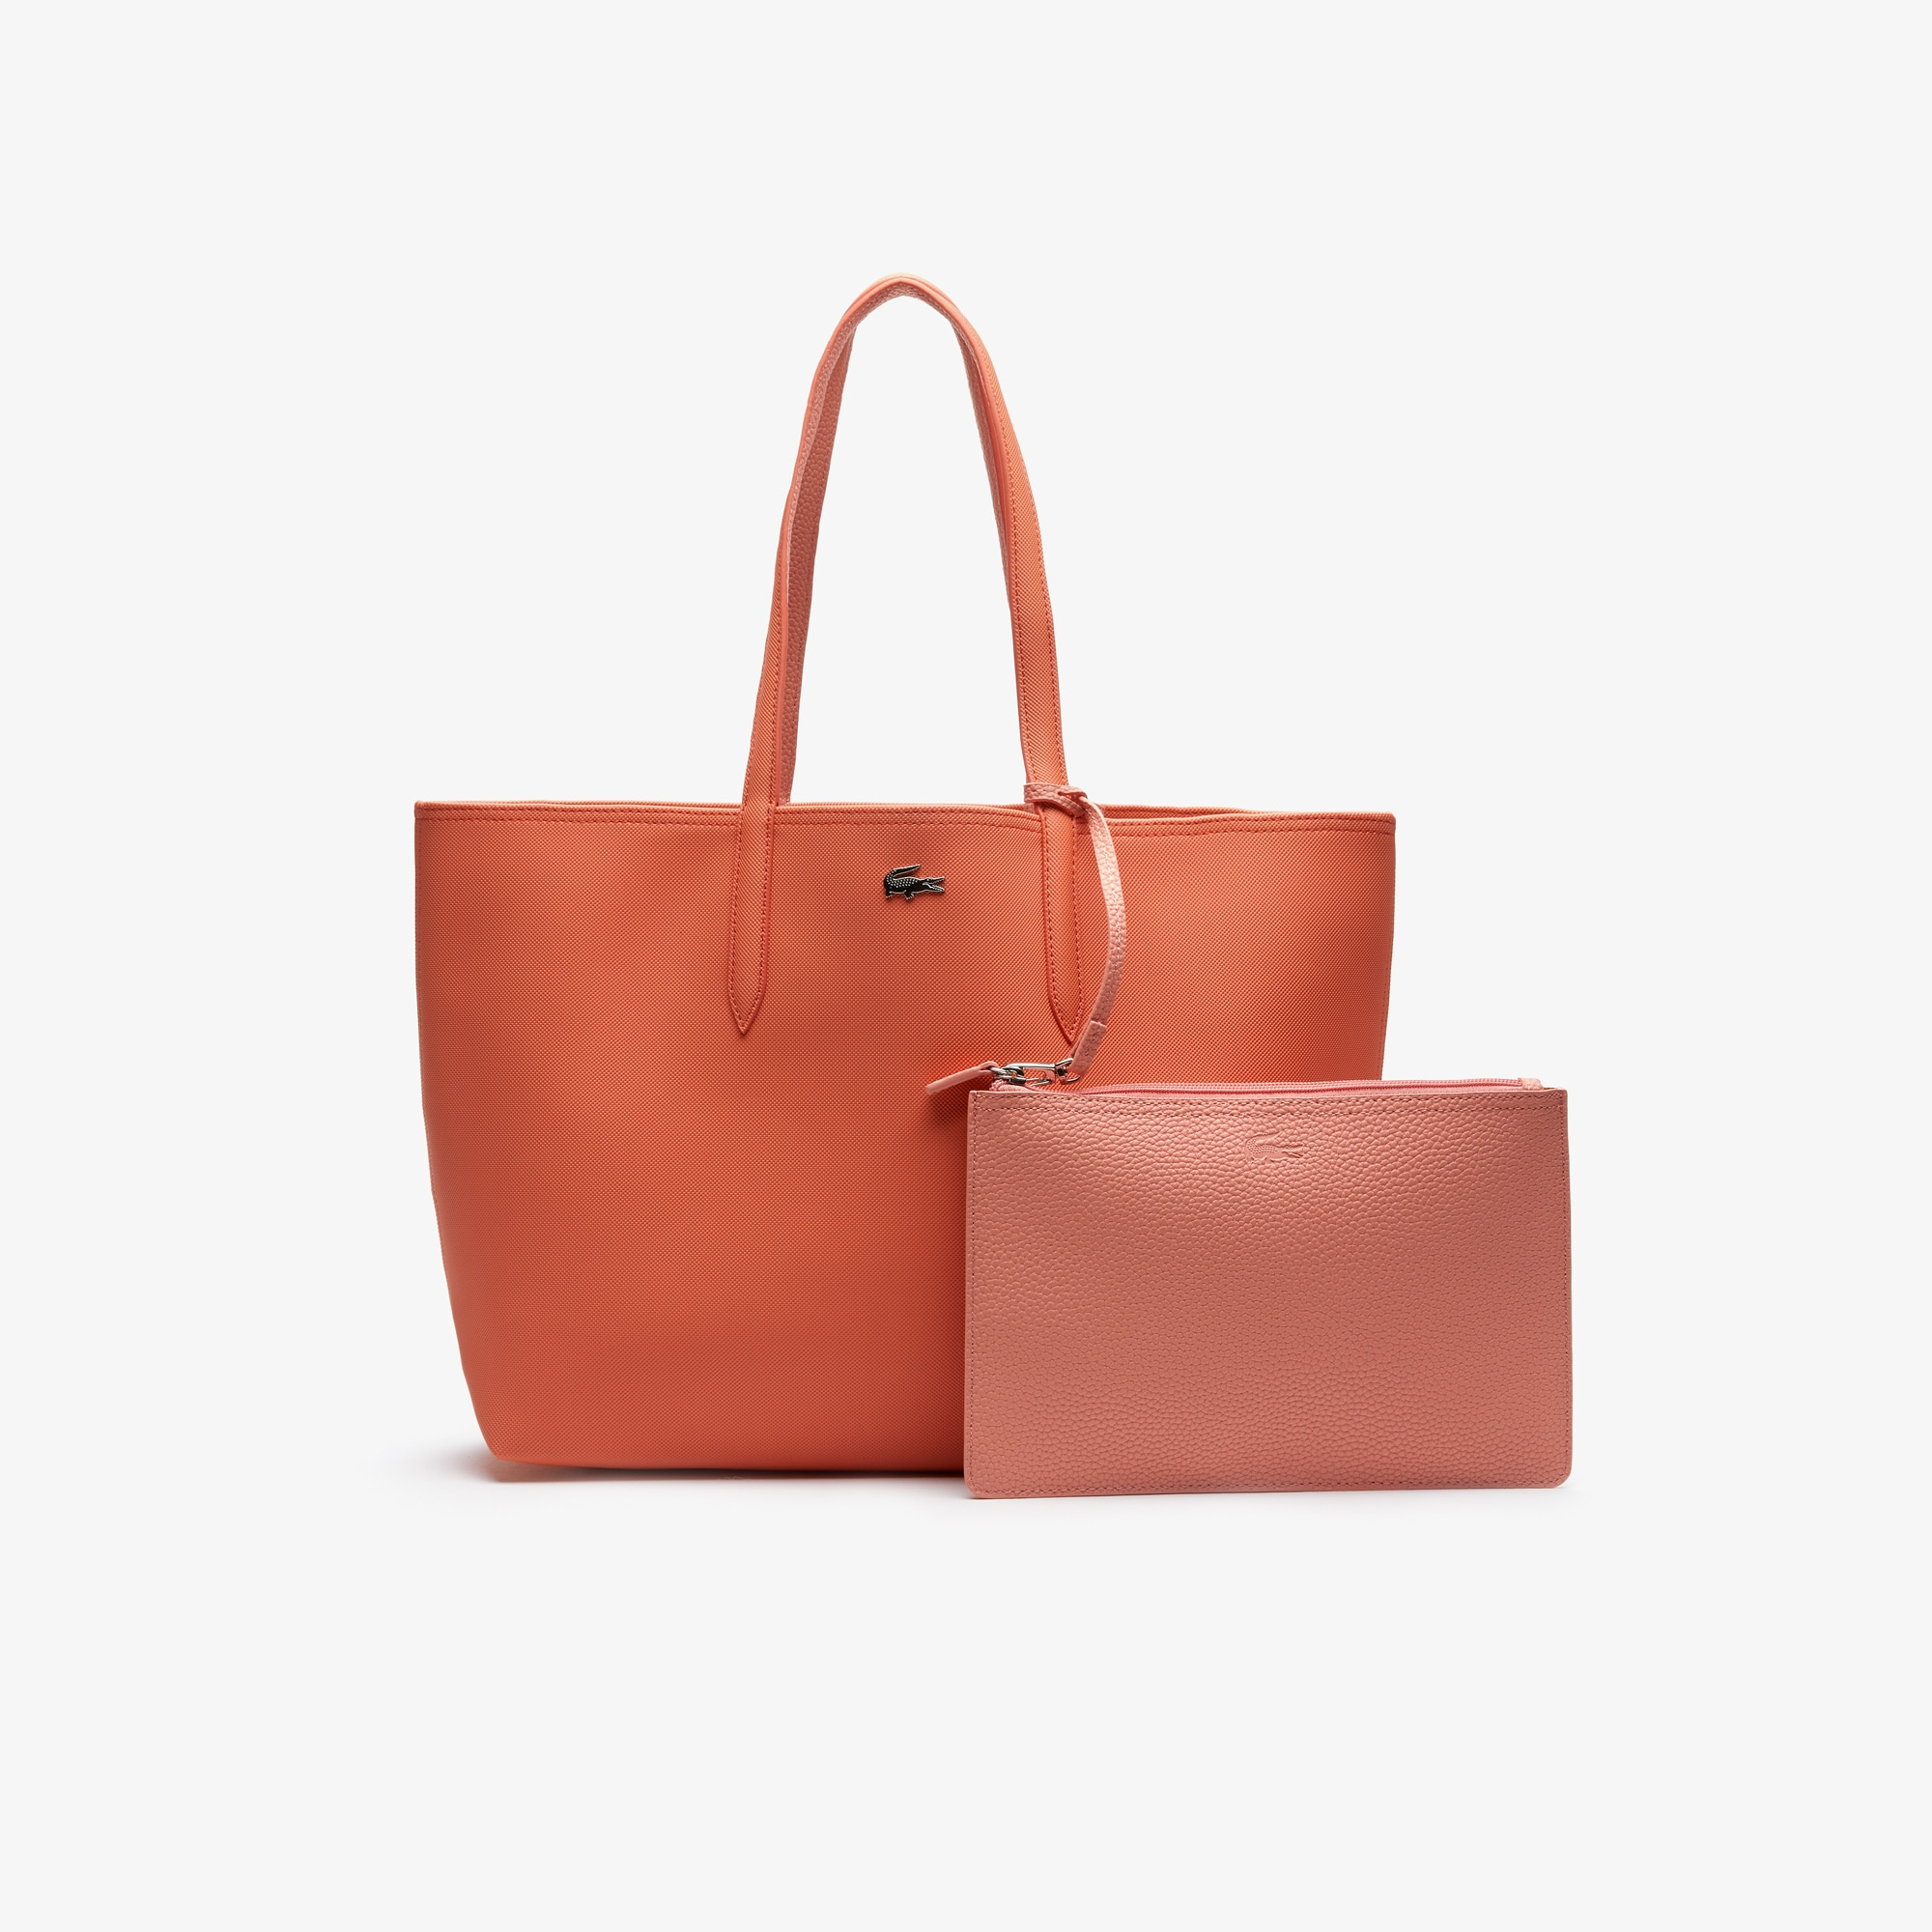 a9bb01e5219 Bags & Handbags Collection | Women's Leather Goods | LACOSTE